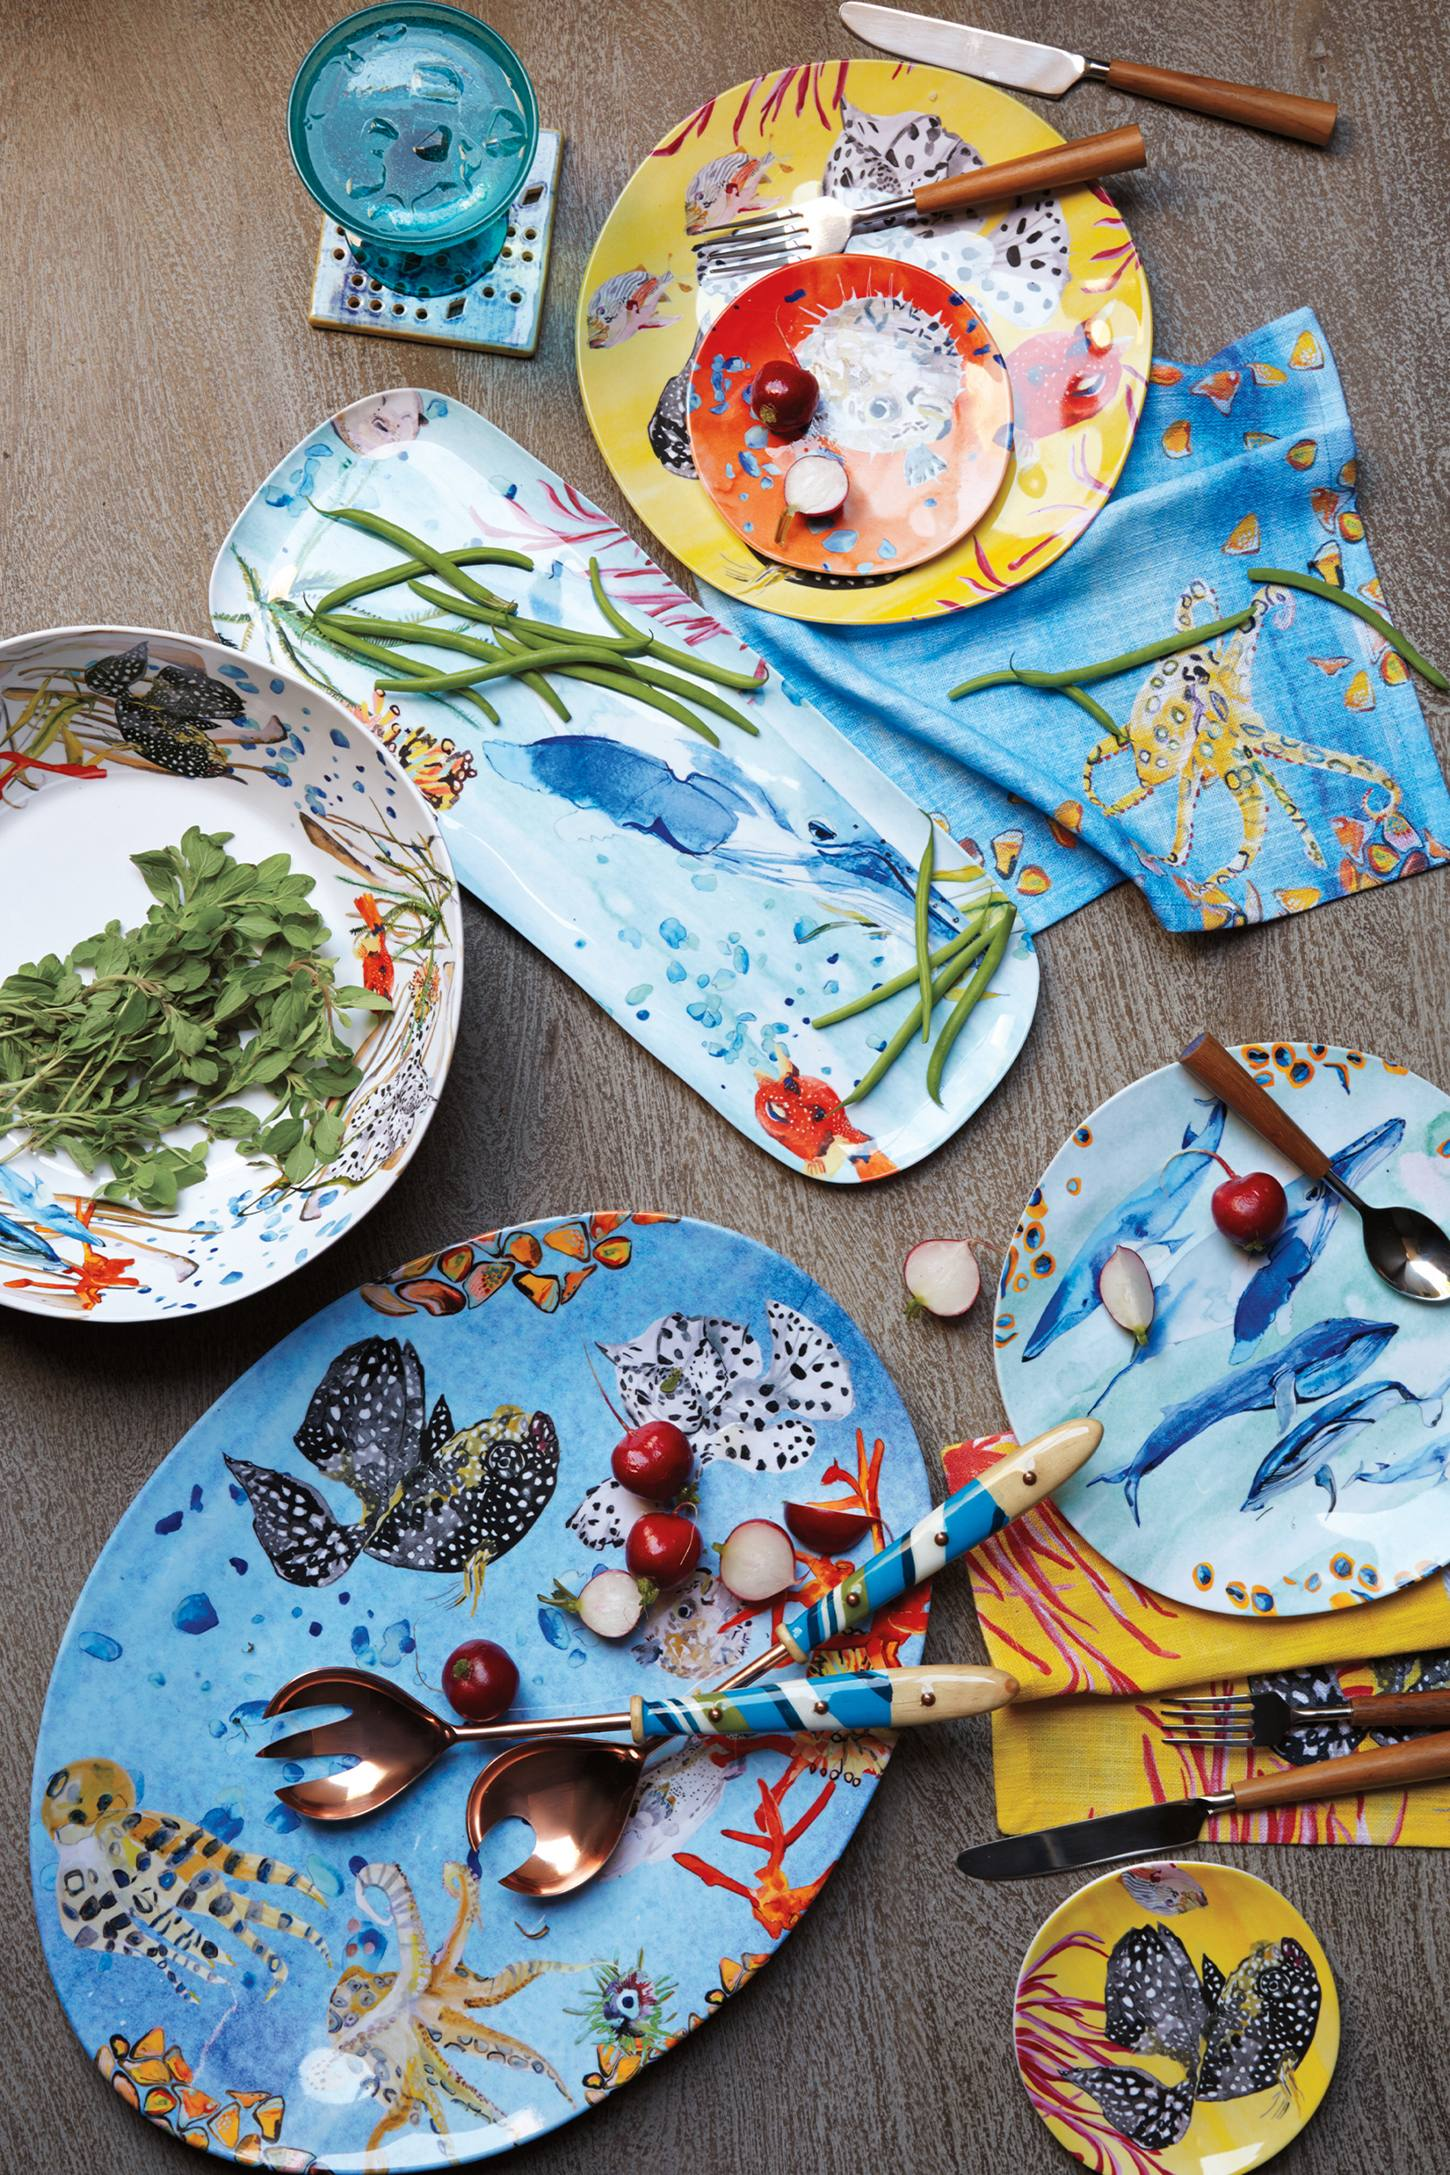 Anthropologie: Under the Sea Serveware